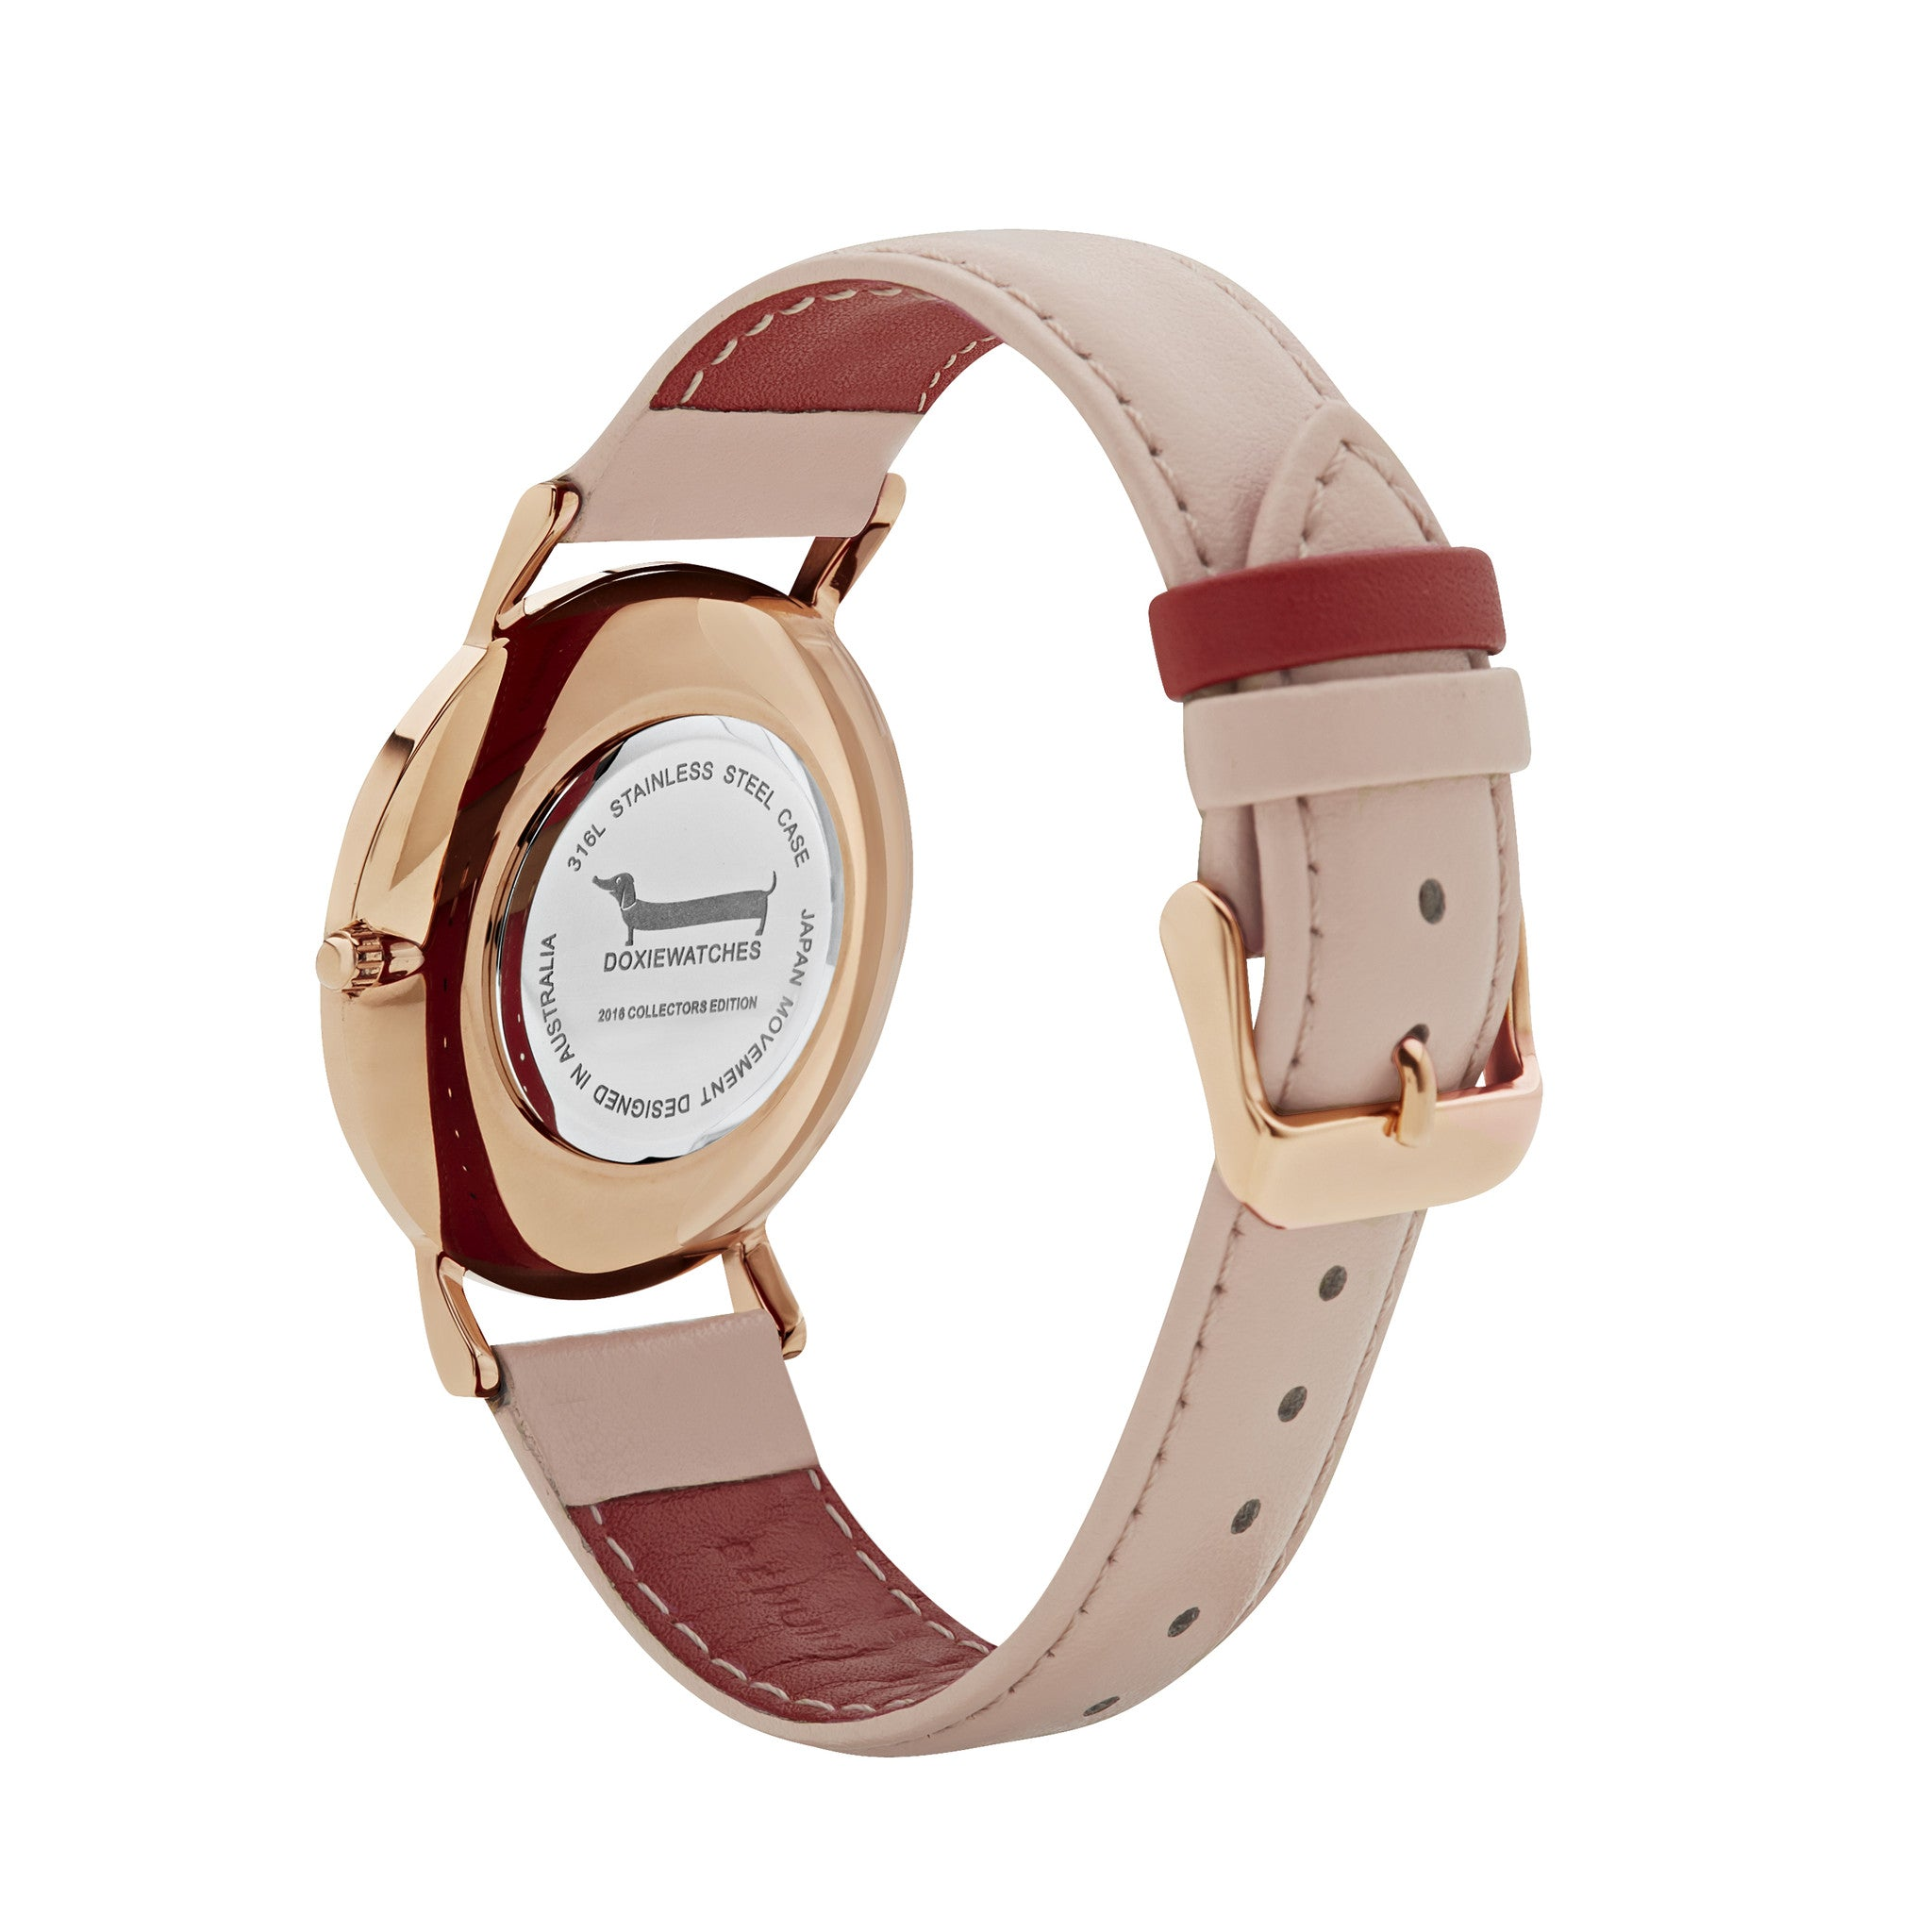 quartz leather us watches watch kate peach spade fashion metro women areatrend womens s